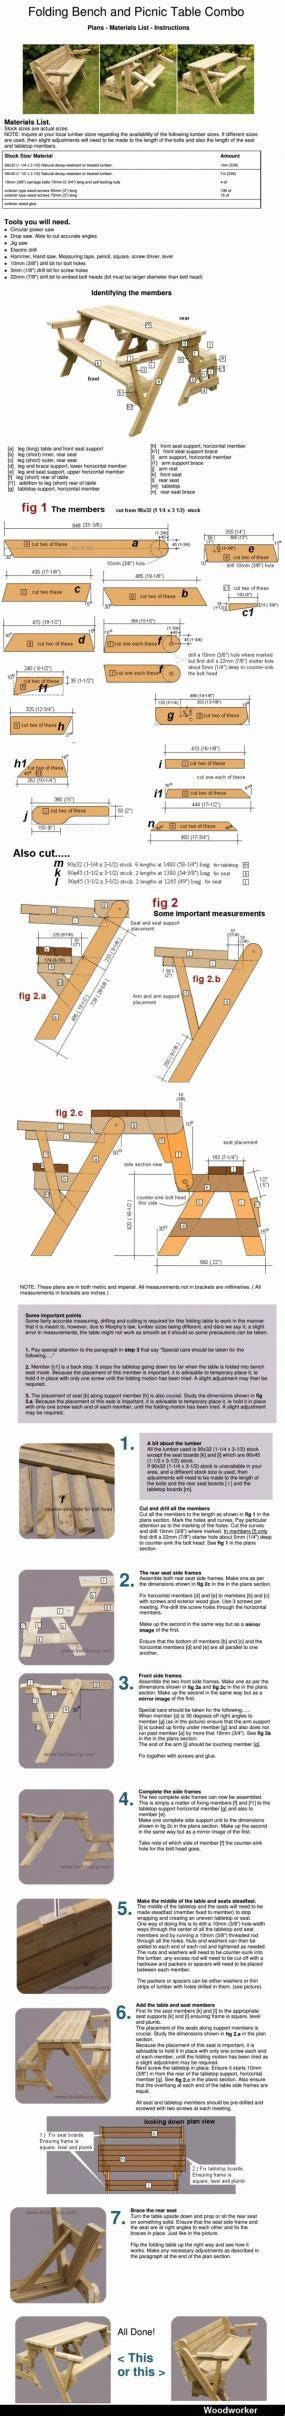 folding bench and picnic table combo free plans folding bench and picnic table combo complete plans